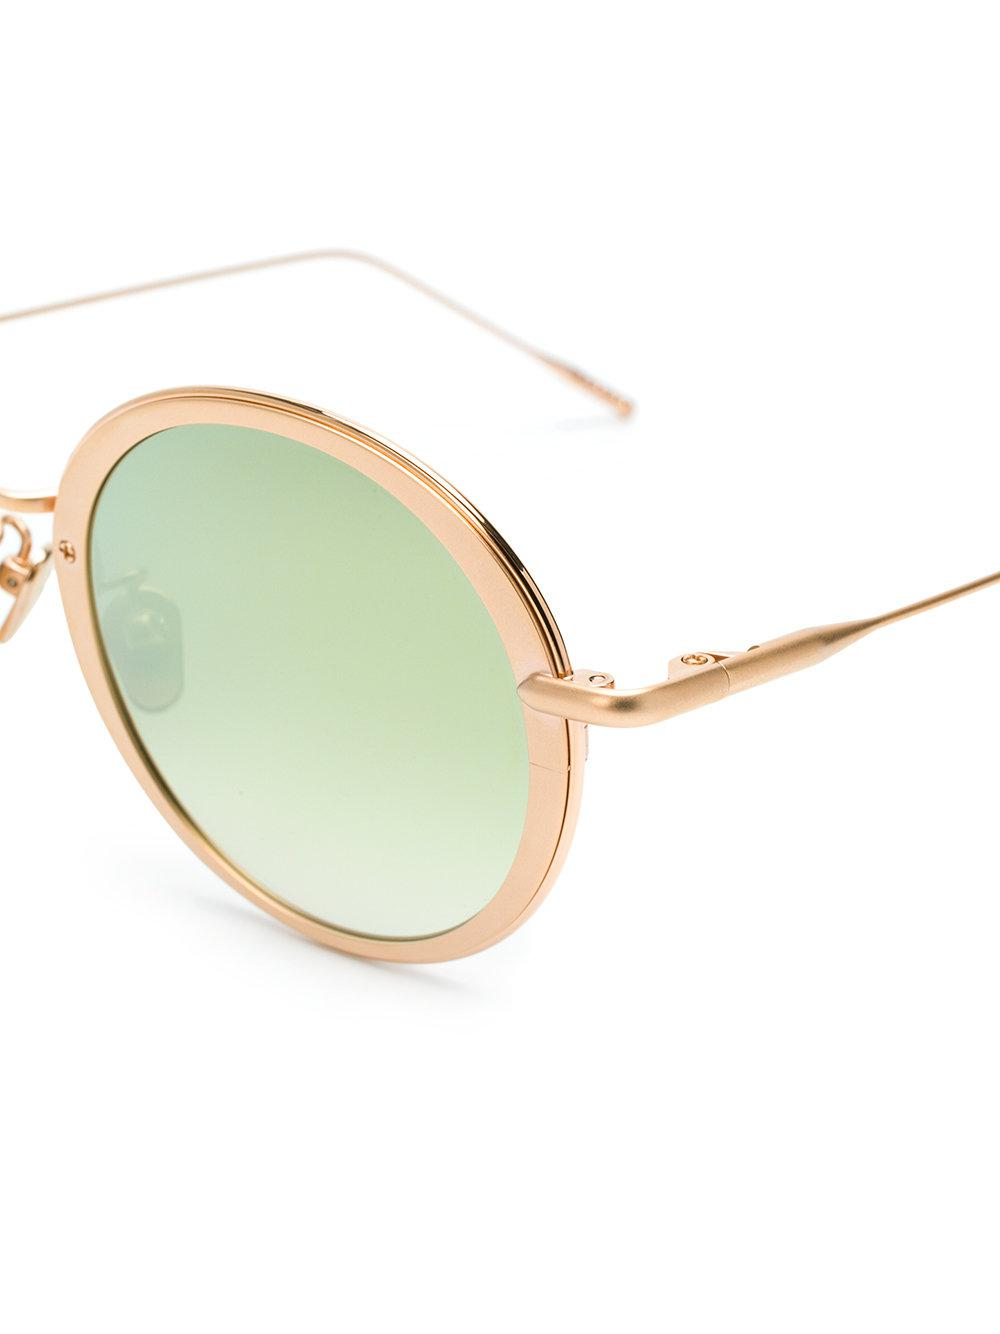 Frency & Mercury Favorite Breakfast Sunglasses in Metallic